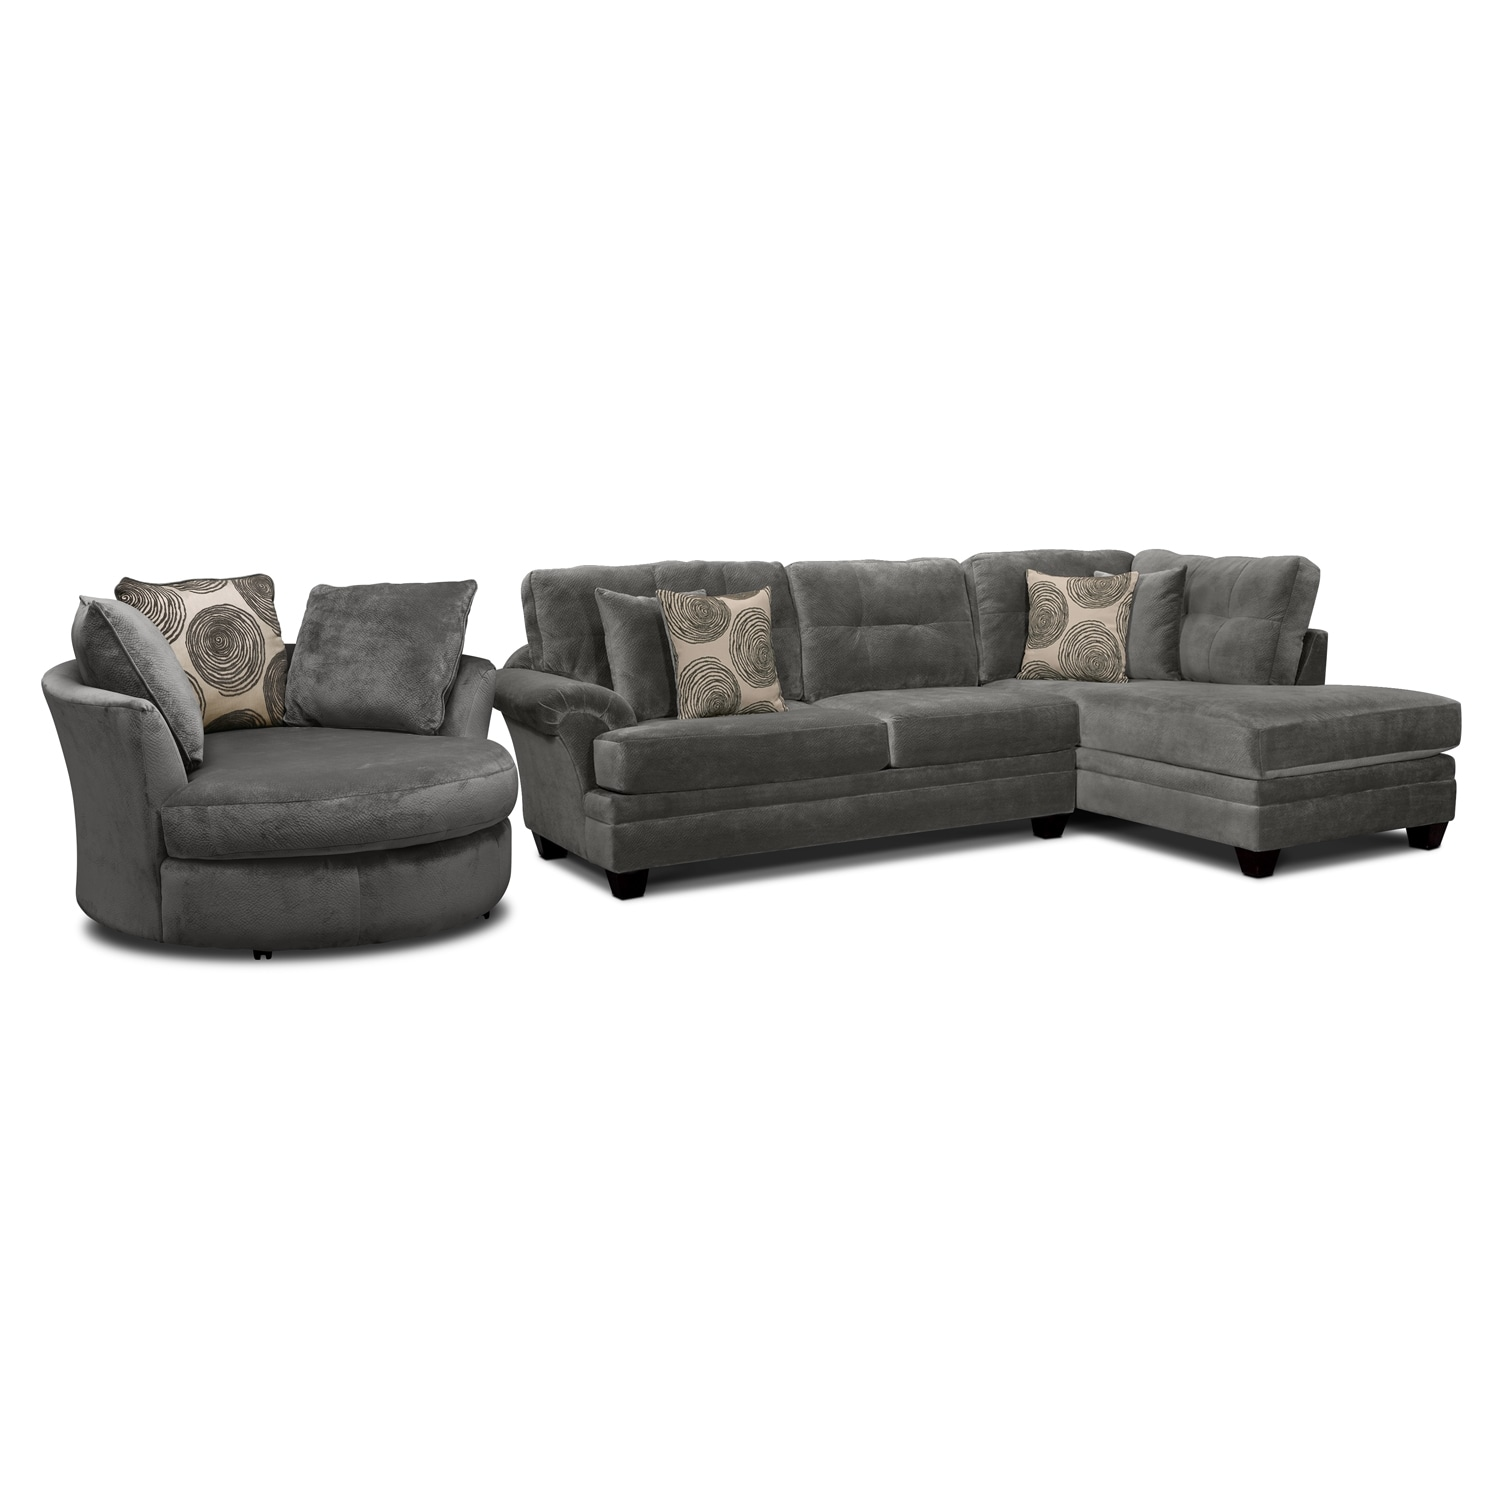 Cordoba Gray II 2 Pc. Sectional and Swivel Chair